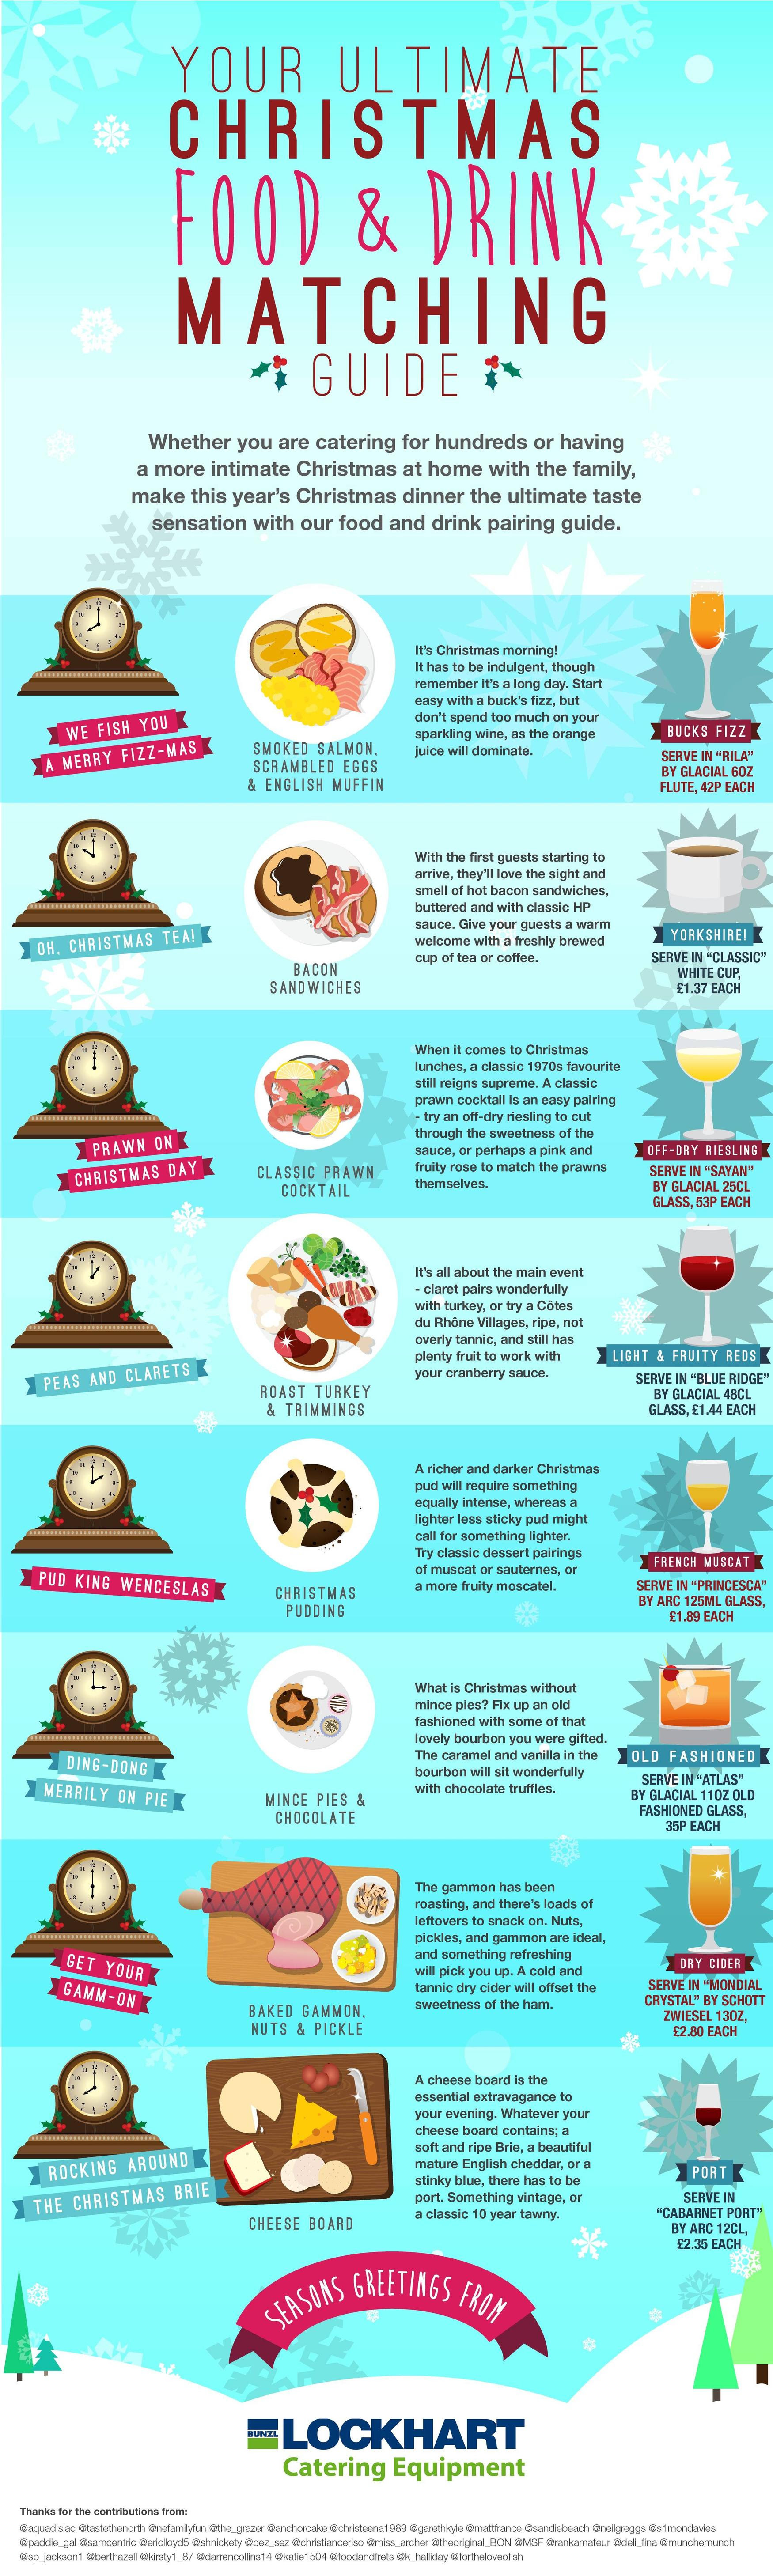 Infographic: Your Ultimate Christmas Food and Drink Matching Guide